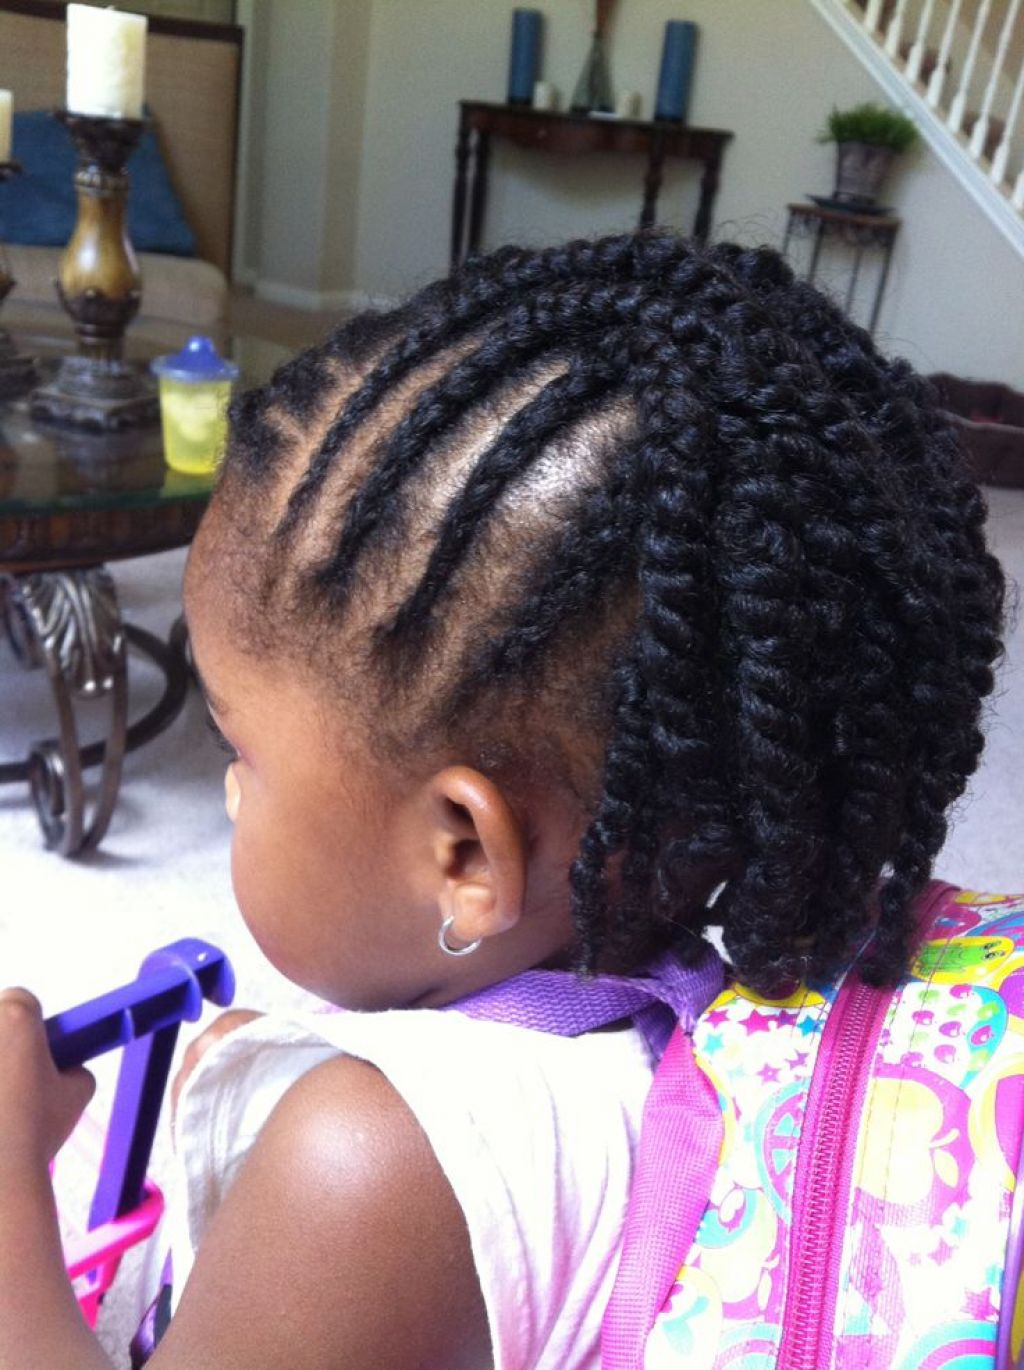 Cute pigtail hairstyle ideas for kids 2018 16